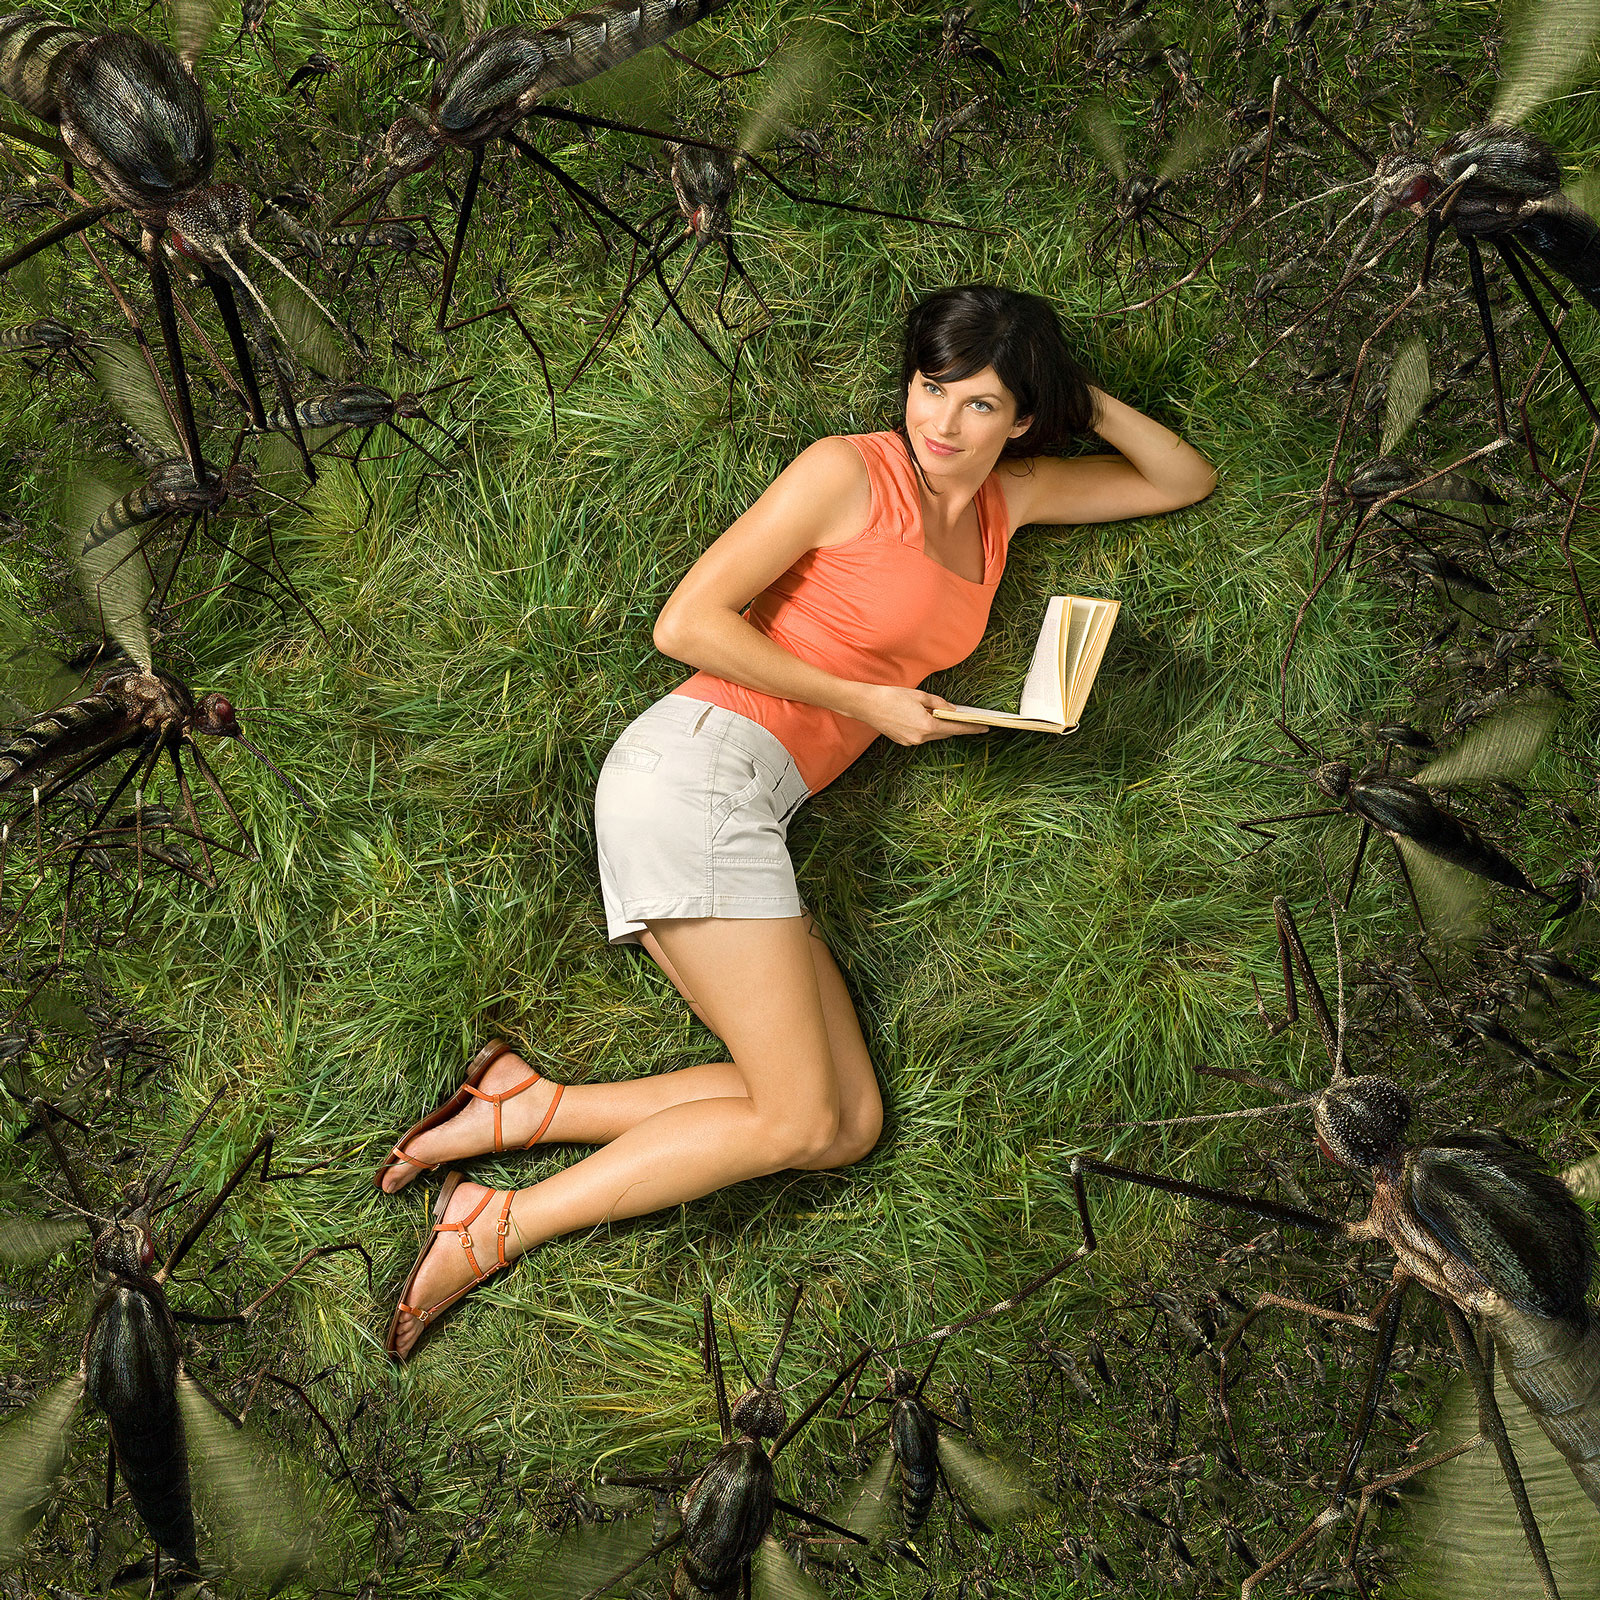 OFF! | CGI  mosquitos with studio set  | Glen Wexler | Advertising Photographer